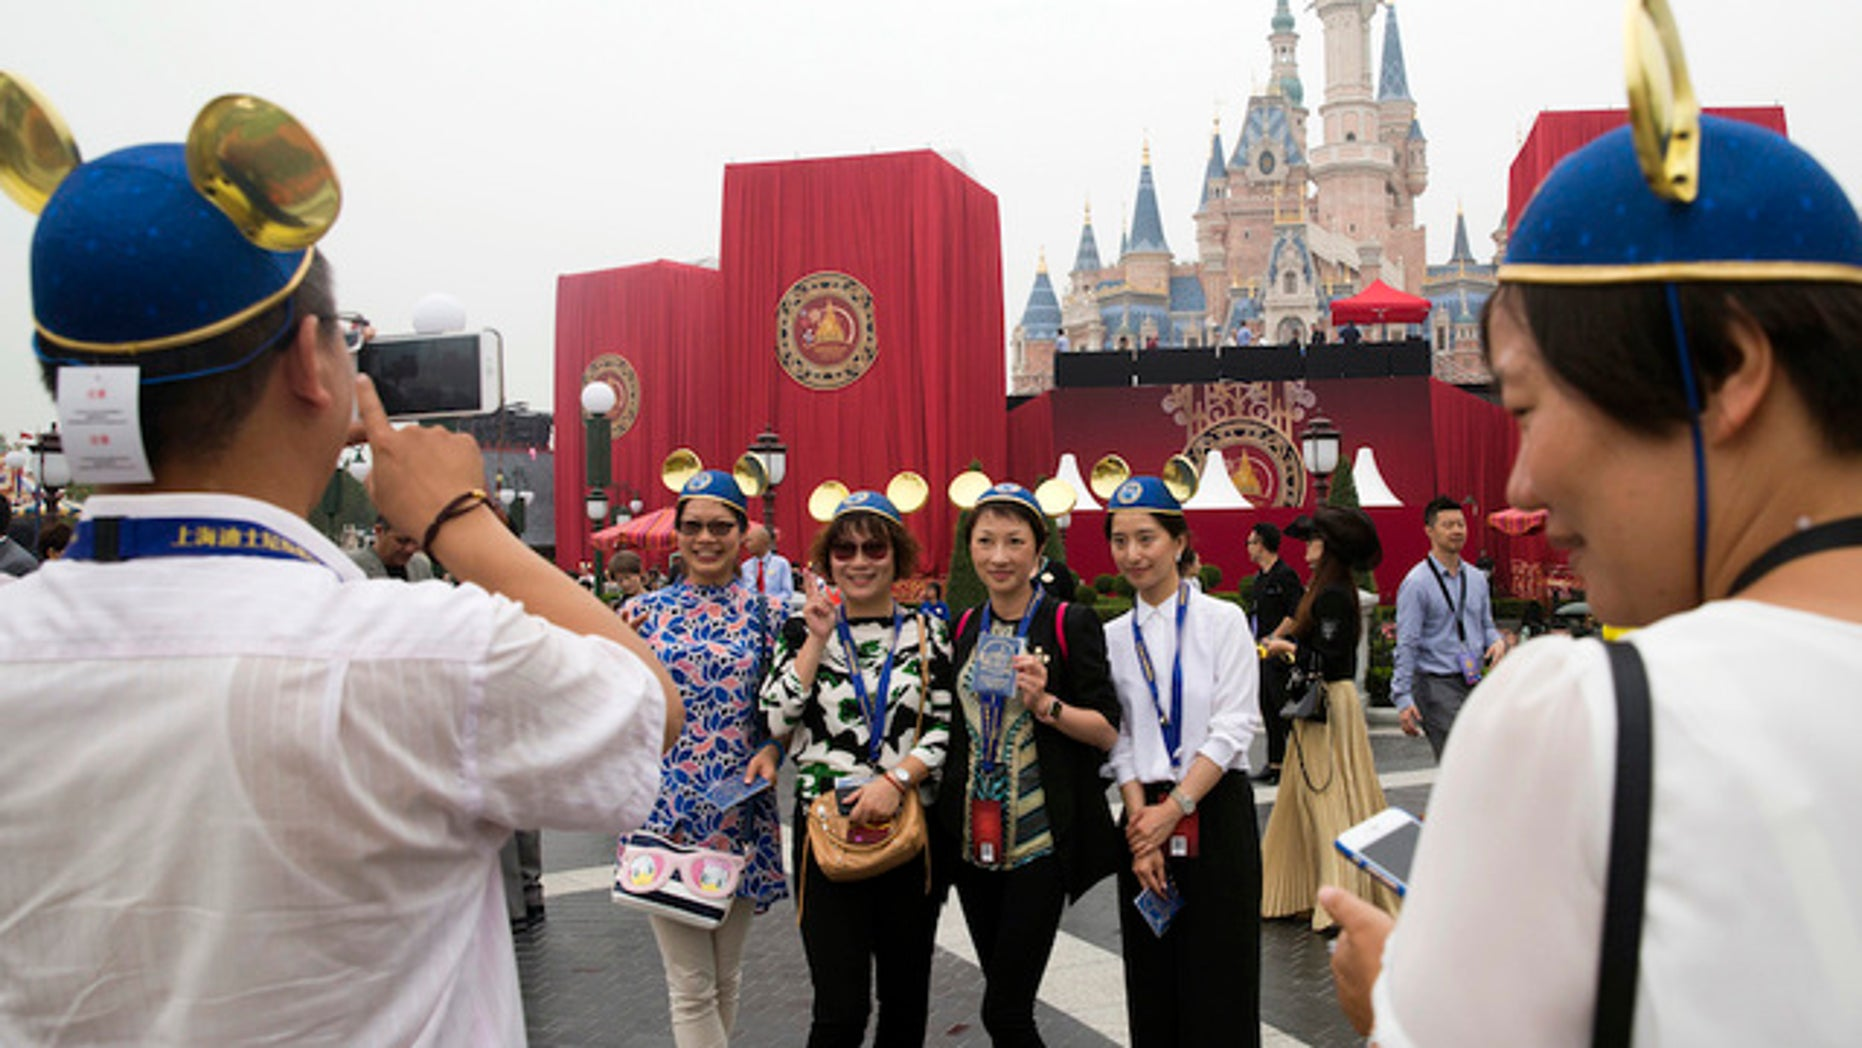 Guests strike pose on opening day at the newest Disney resort and theme park property in Shanghai, China.